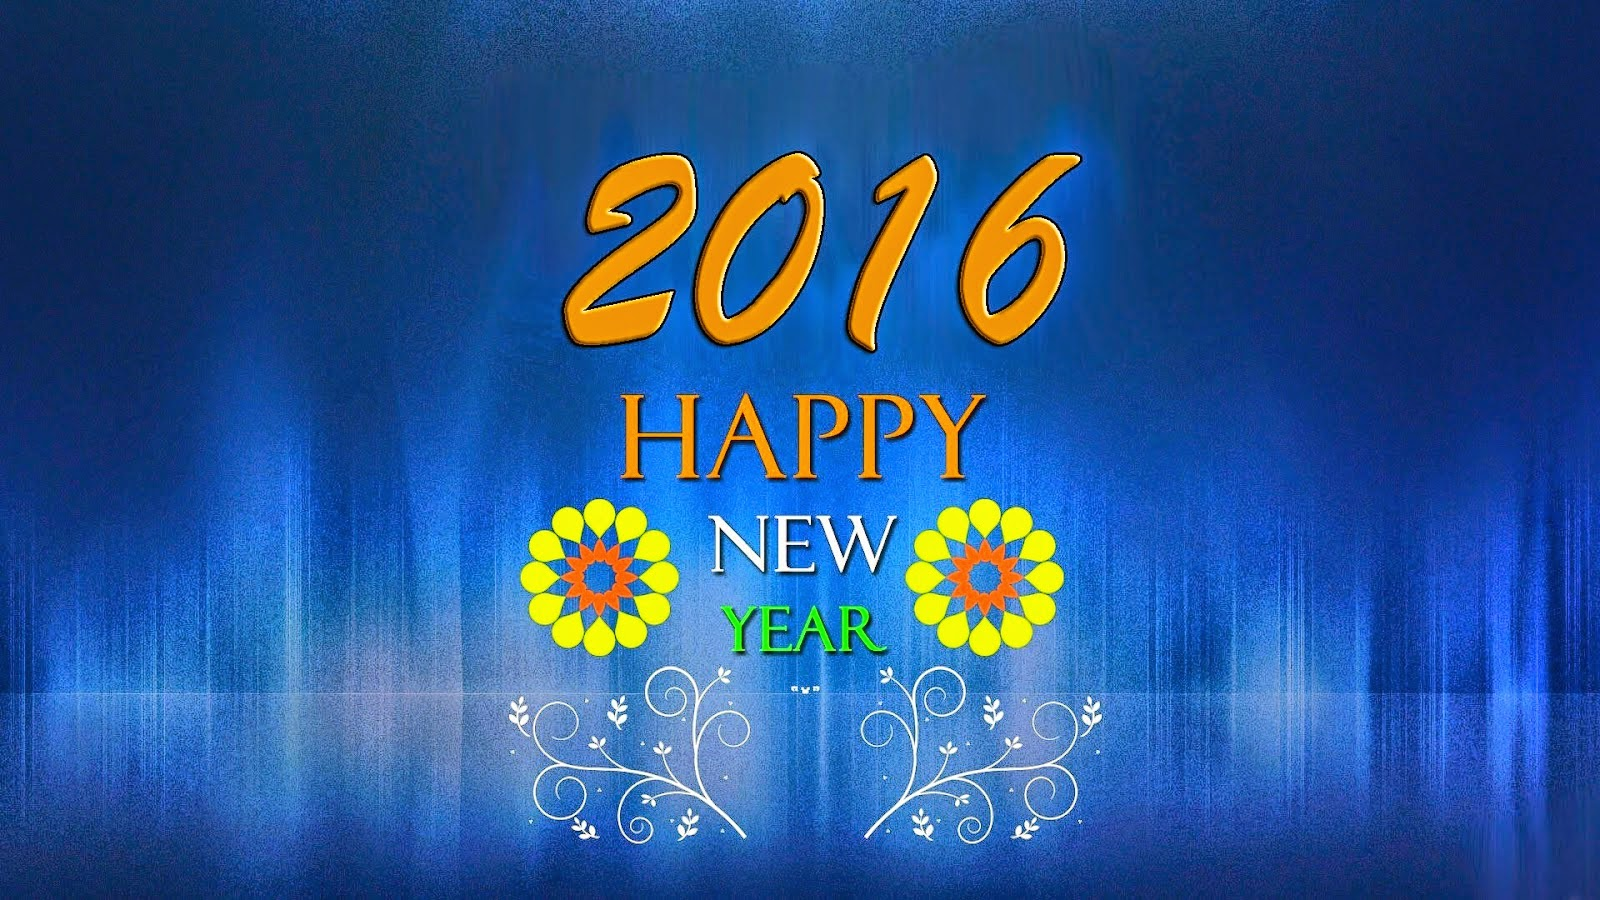 Romantic New Year 2016 Greetings Messages for Lovers Wallpapers